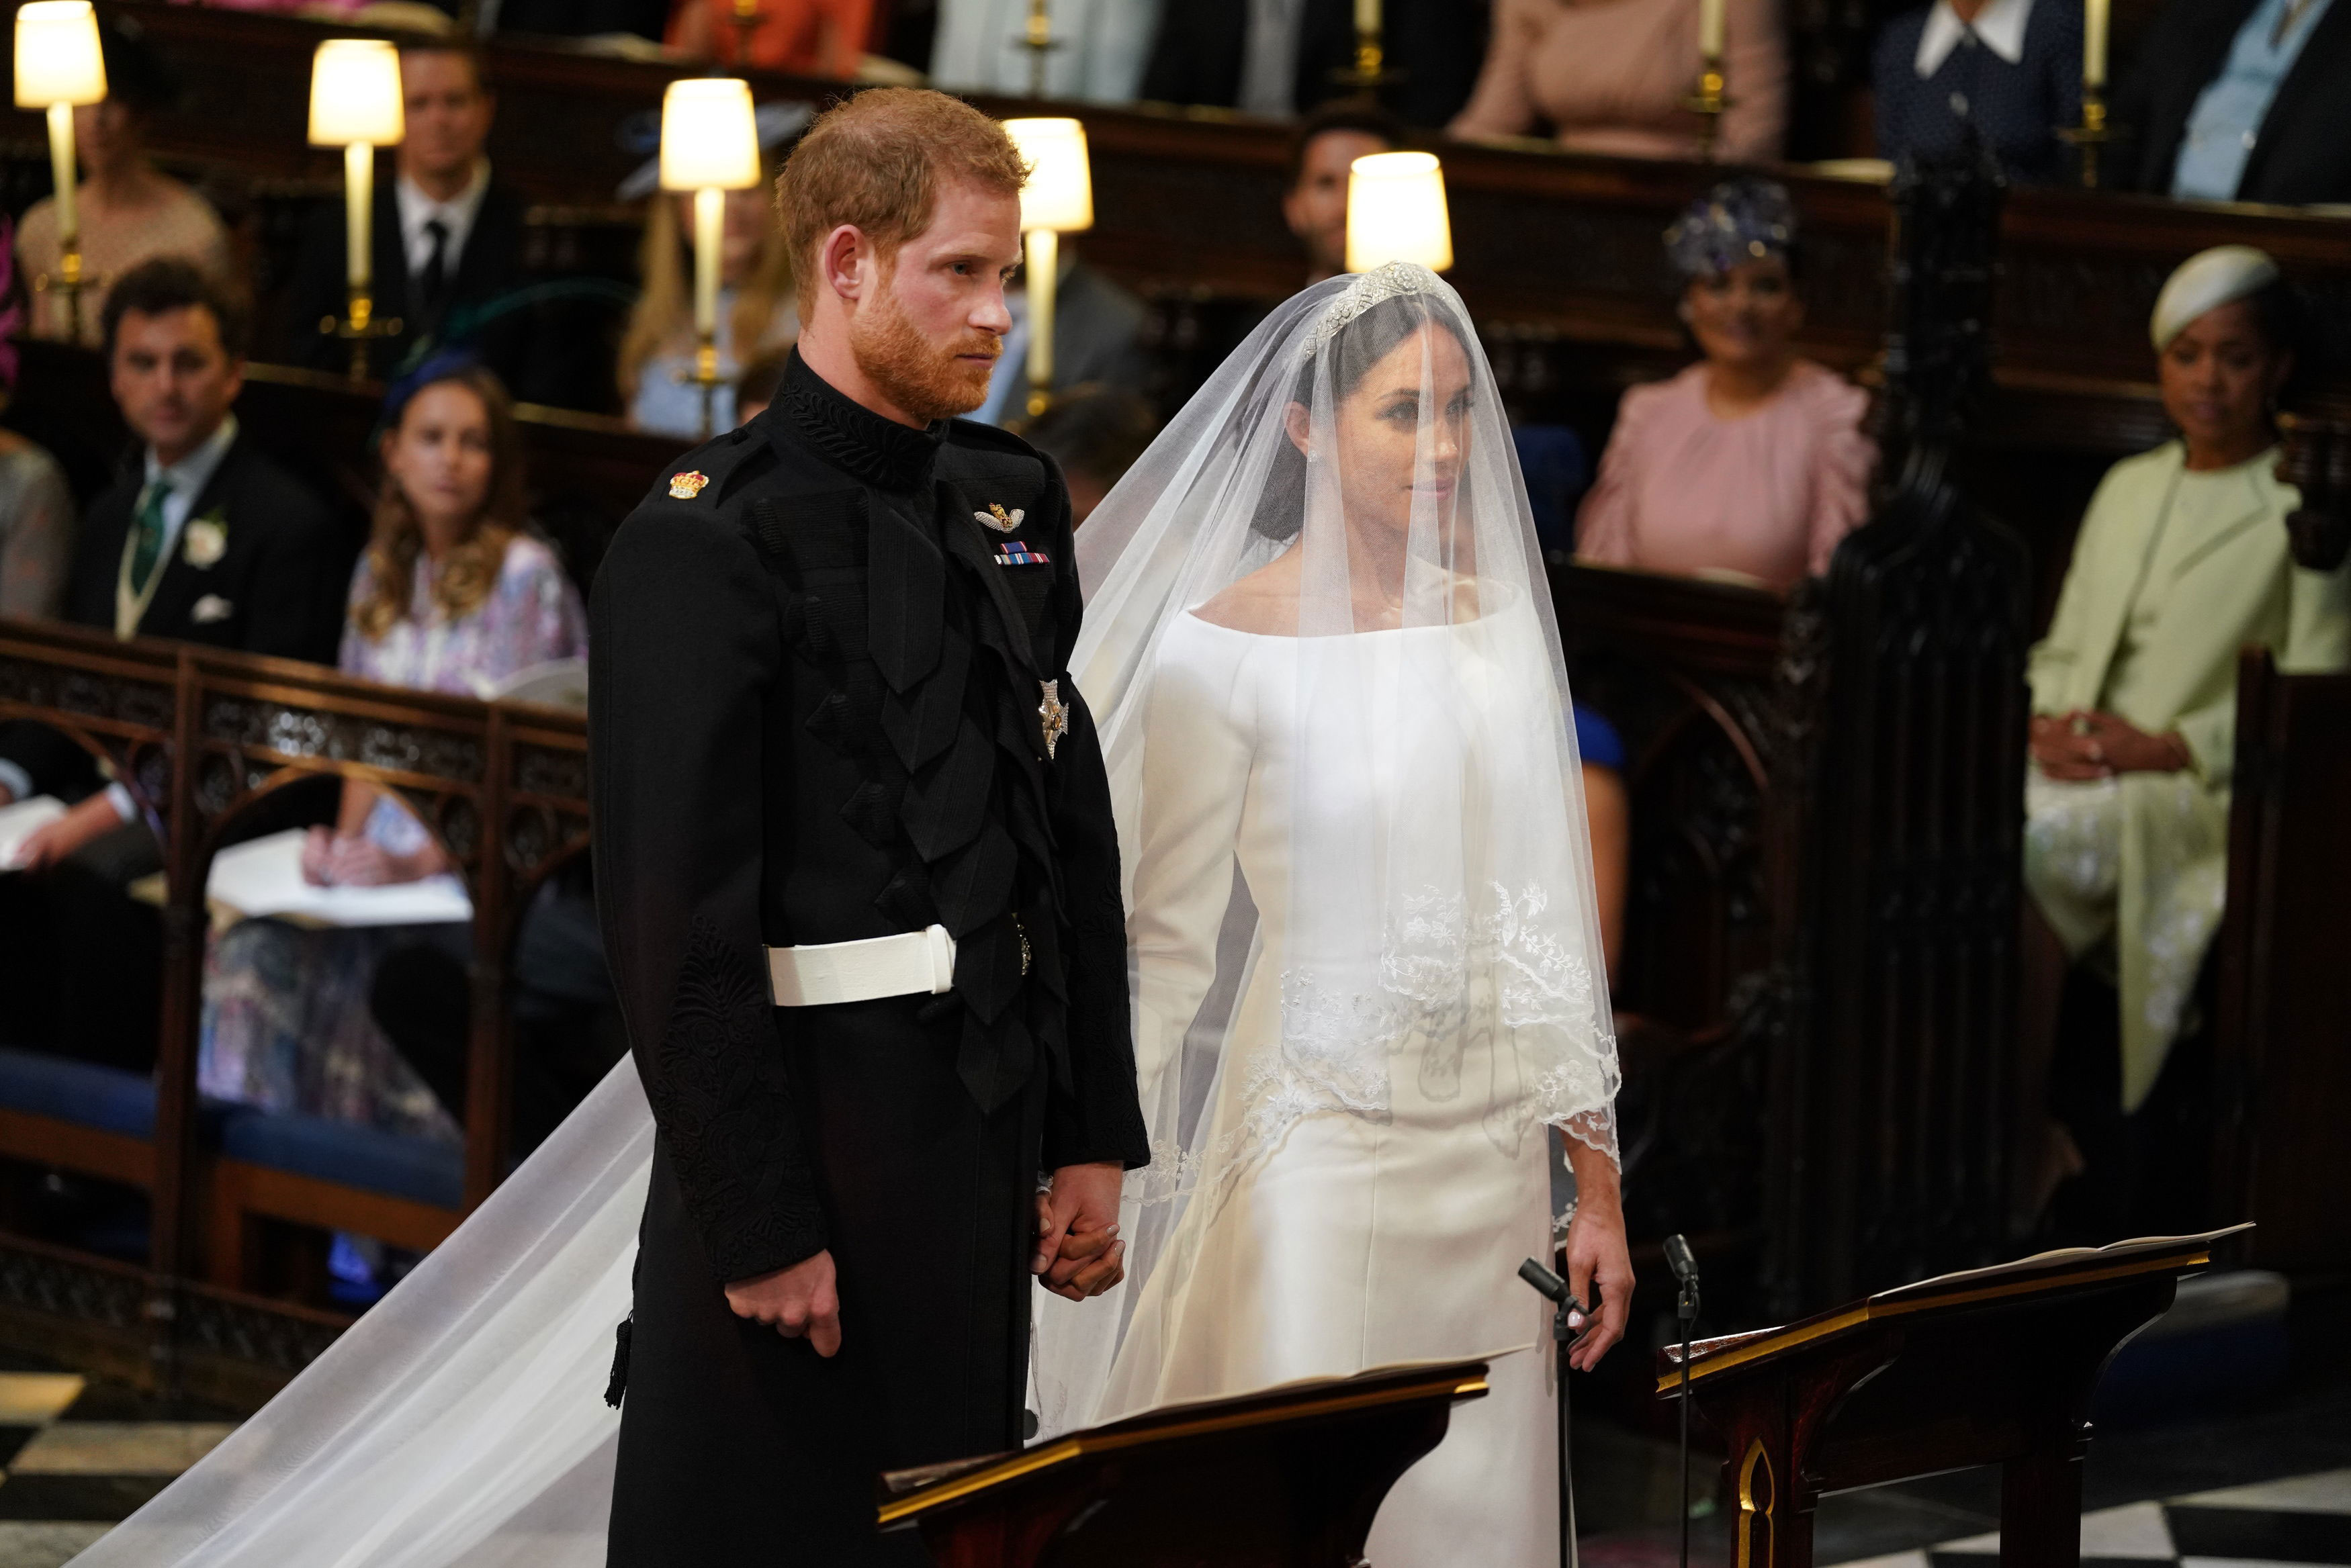 Prince Harry and Meghan Markle stand together during their wedding at St George's Chapel in Windsor, England, on May 19, 2018.